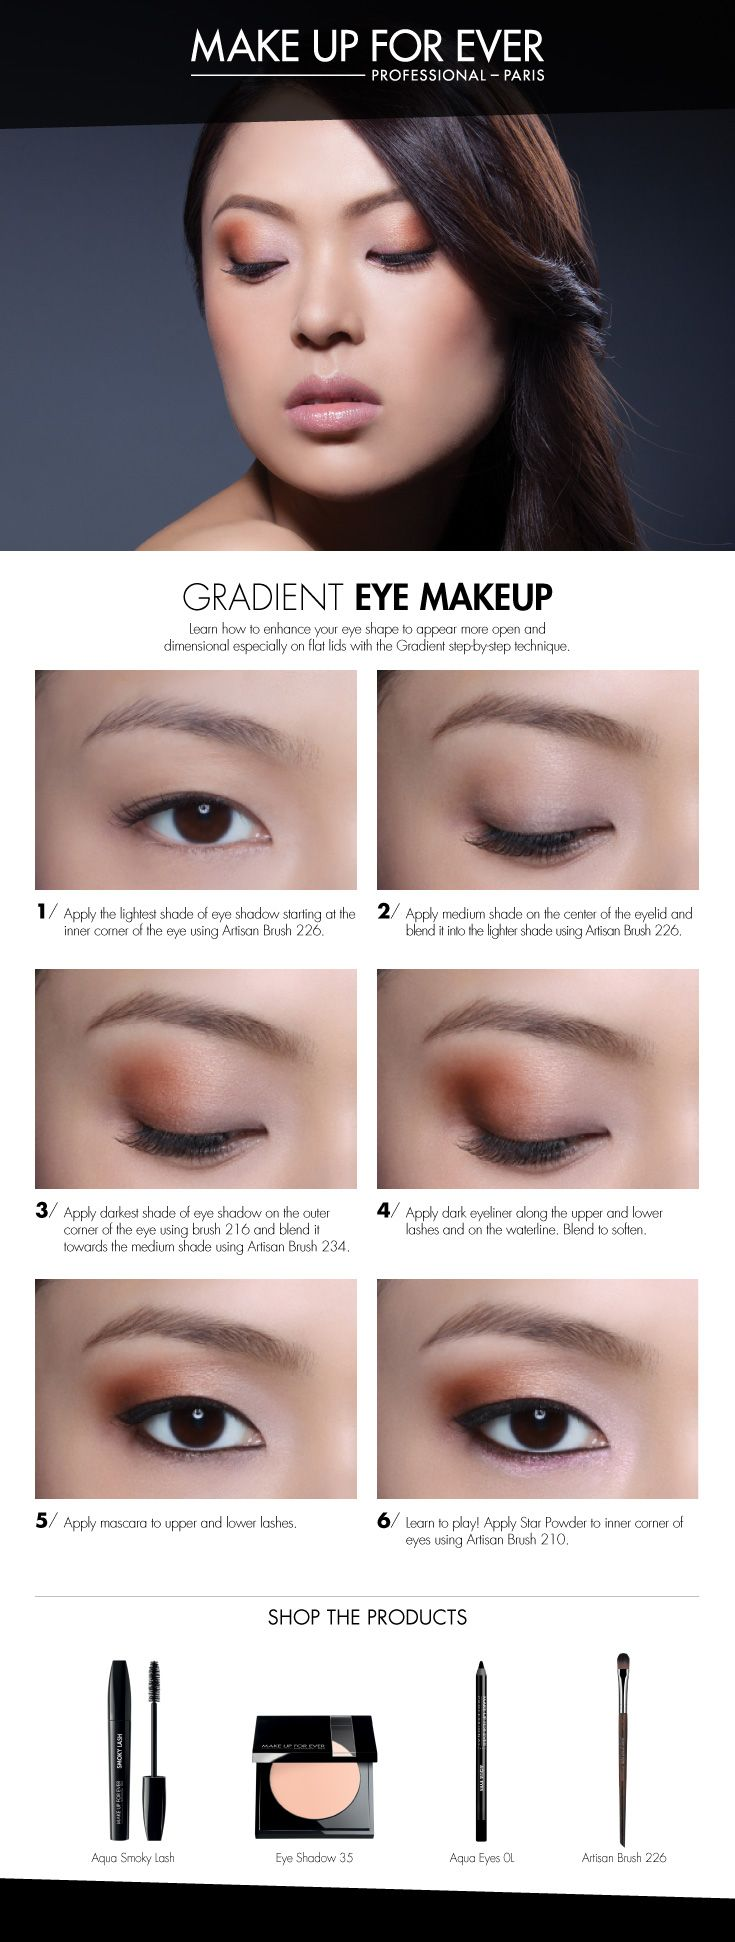 How to use make-up to increase the eyes